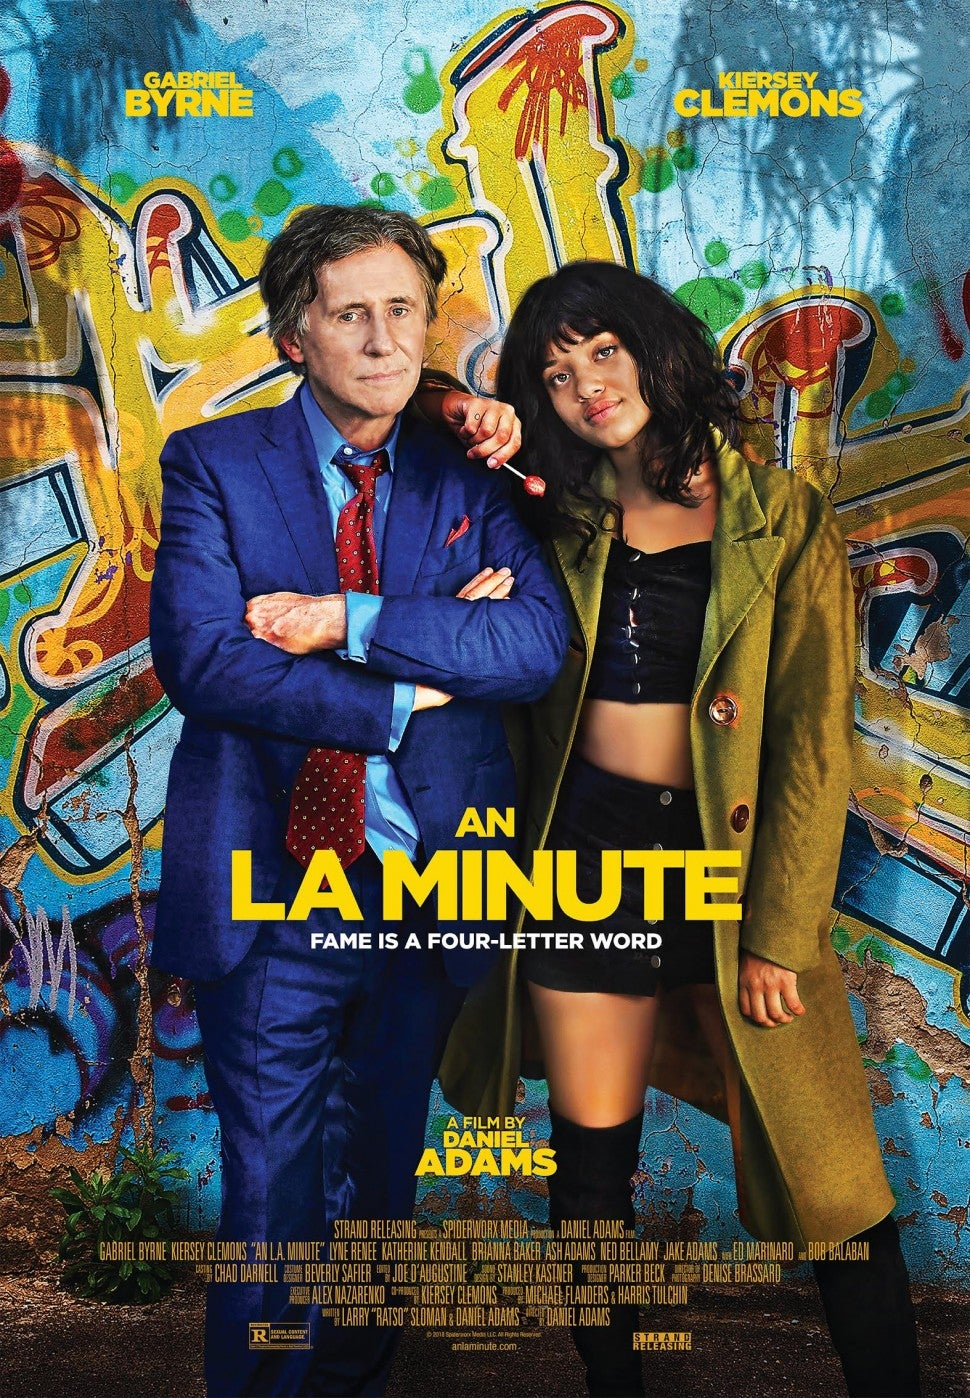 An L.A. Minute Artwork, Kiersey Clemons